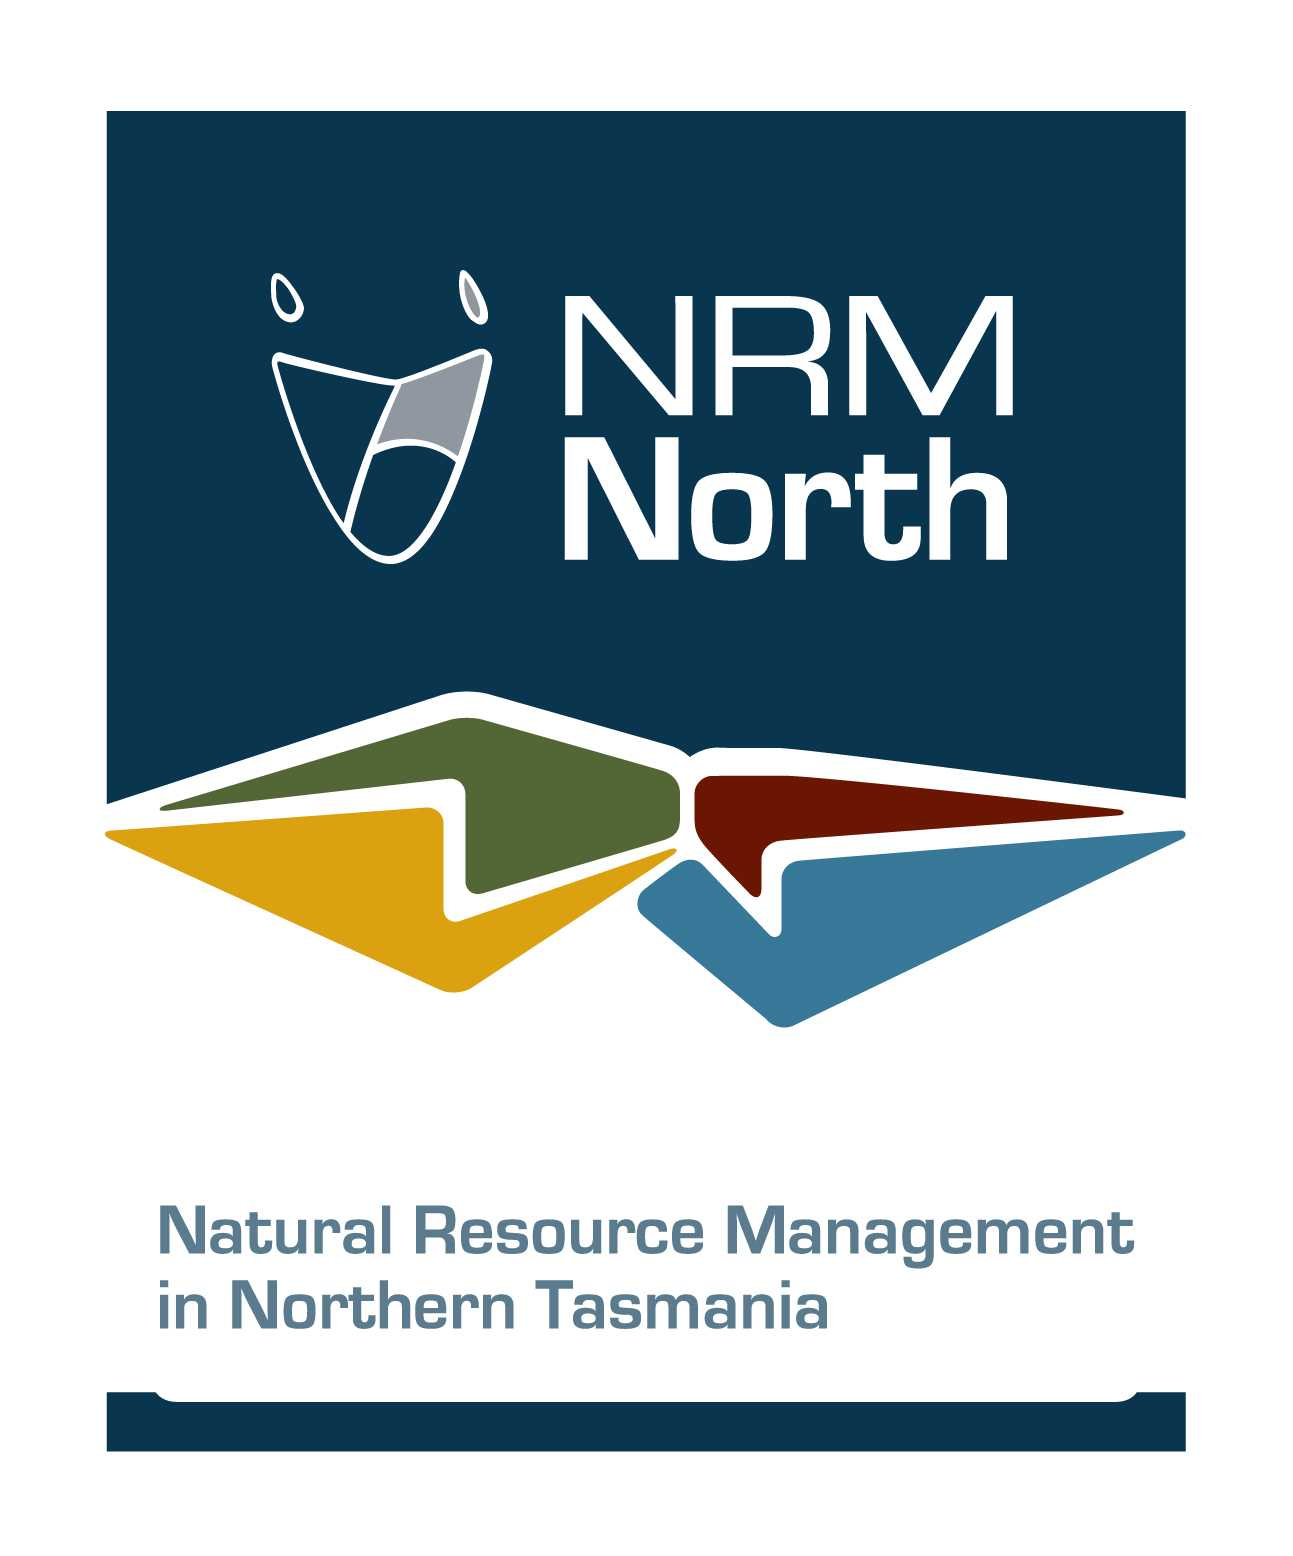 NRM_North_LOGO_RGB(2).jpg